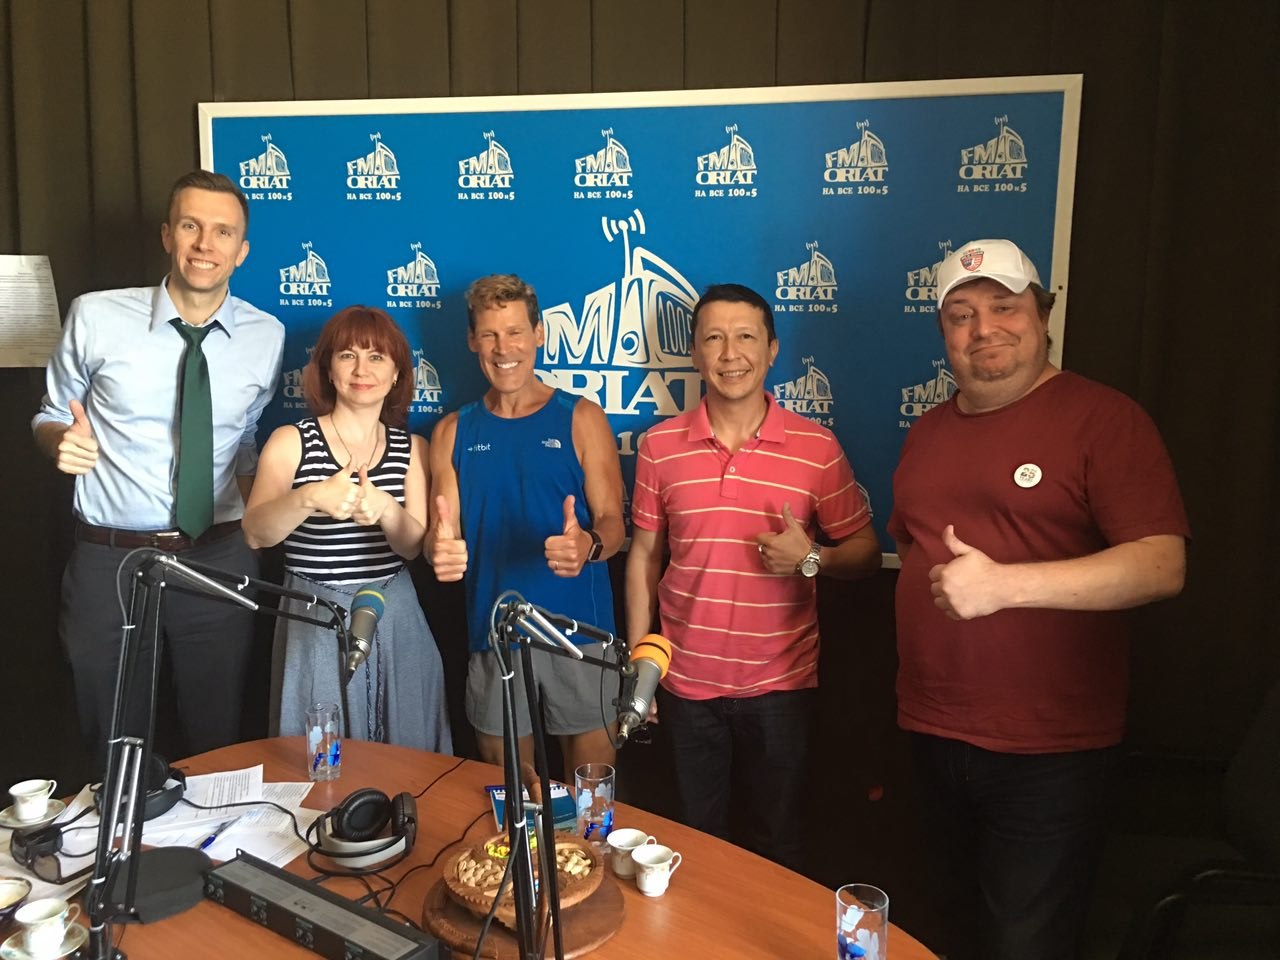 Dean and the radio crew give a thumbs up in this group photo